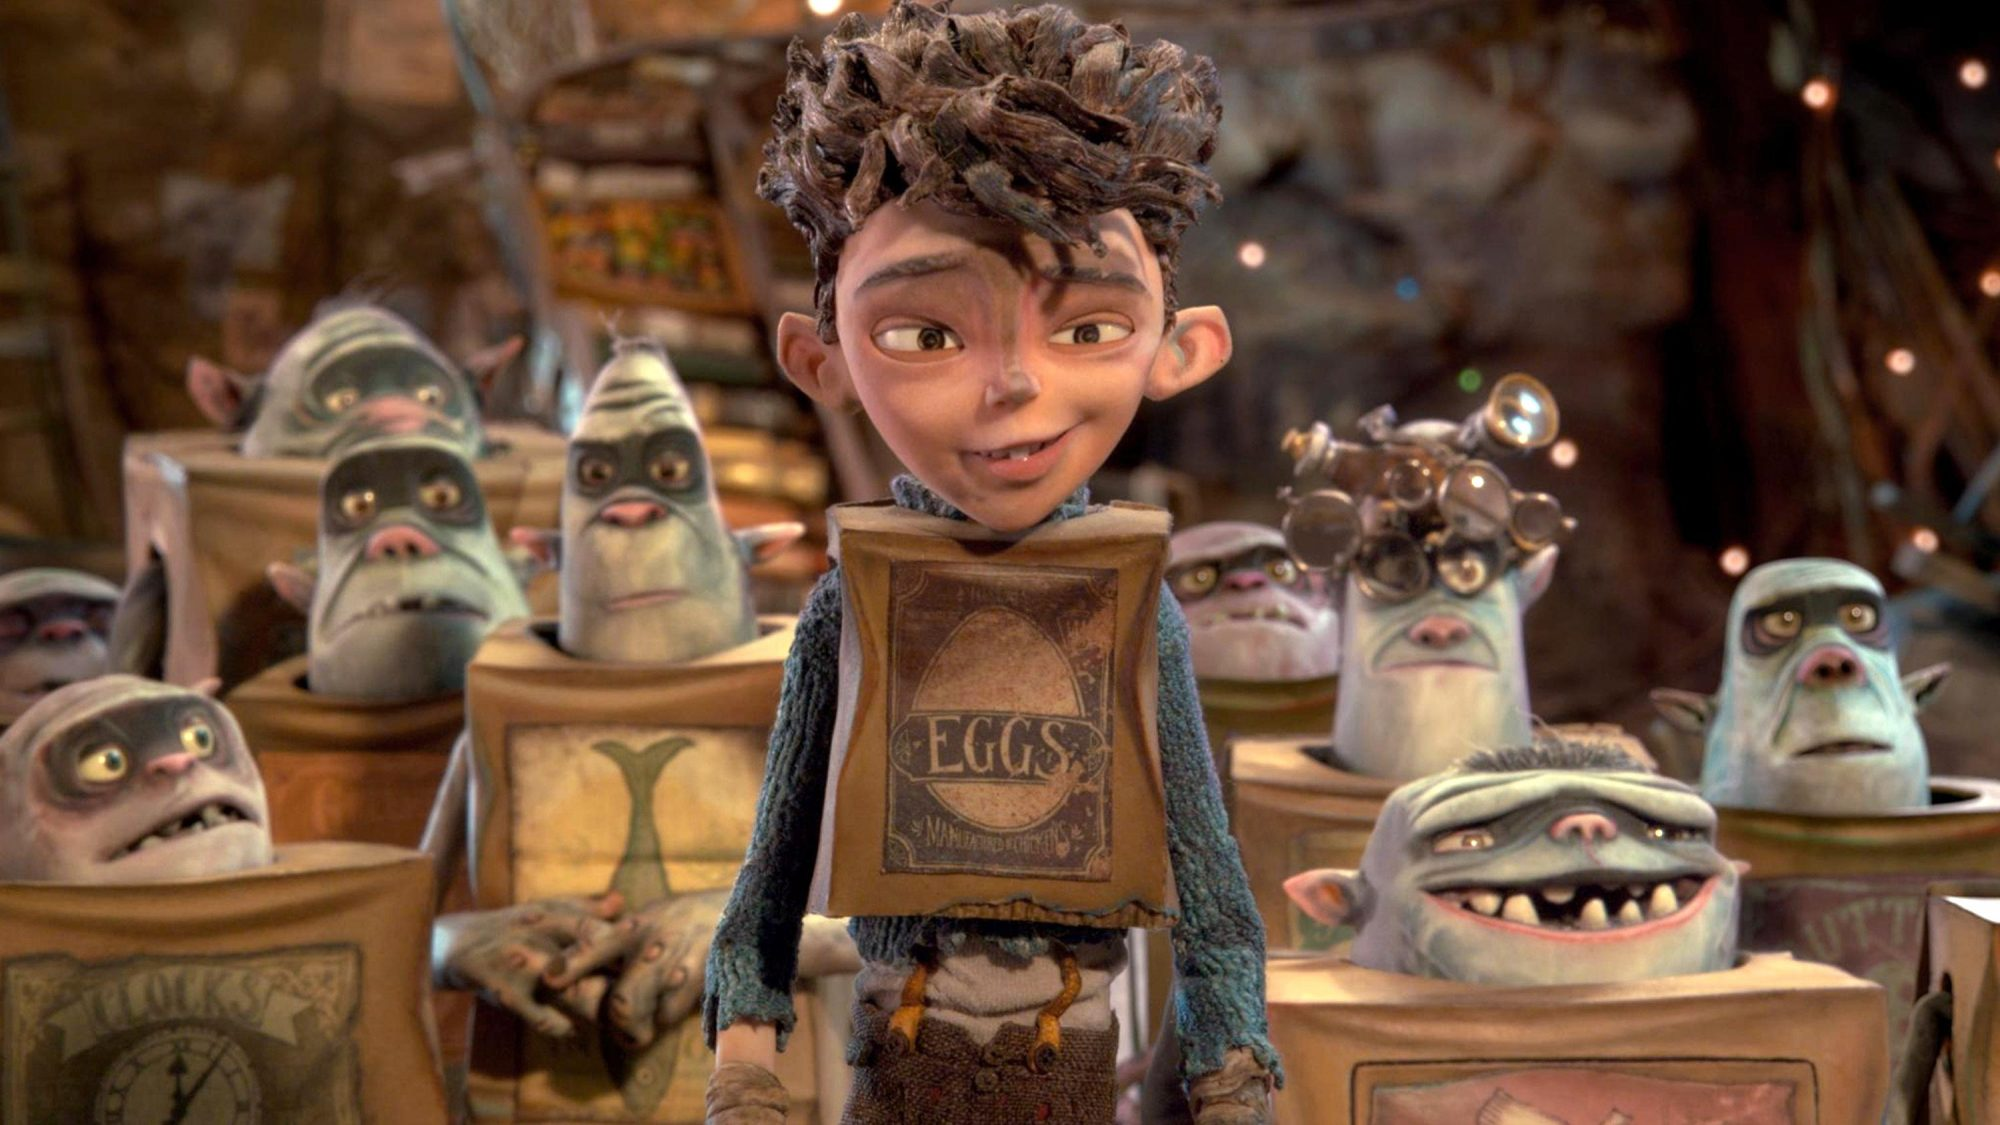 THE BOXTROLLS (2014)Eggs (center) is the main character.